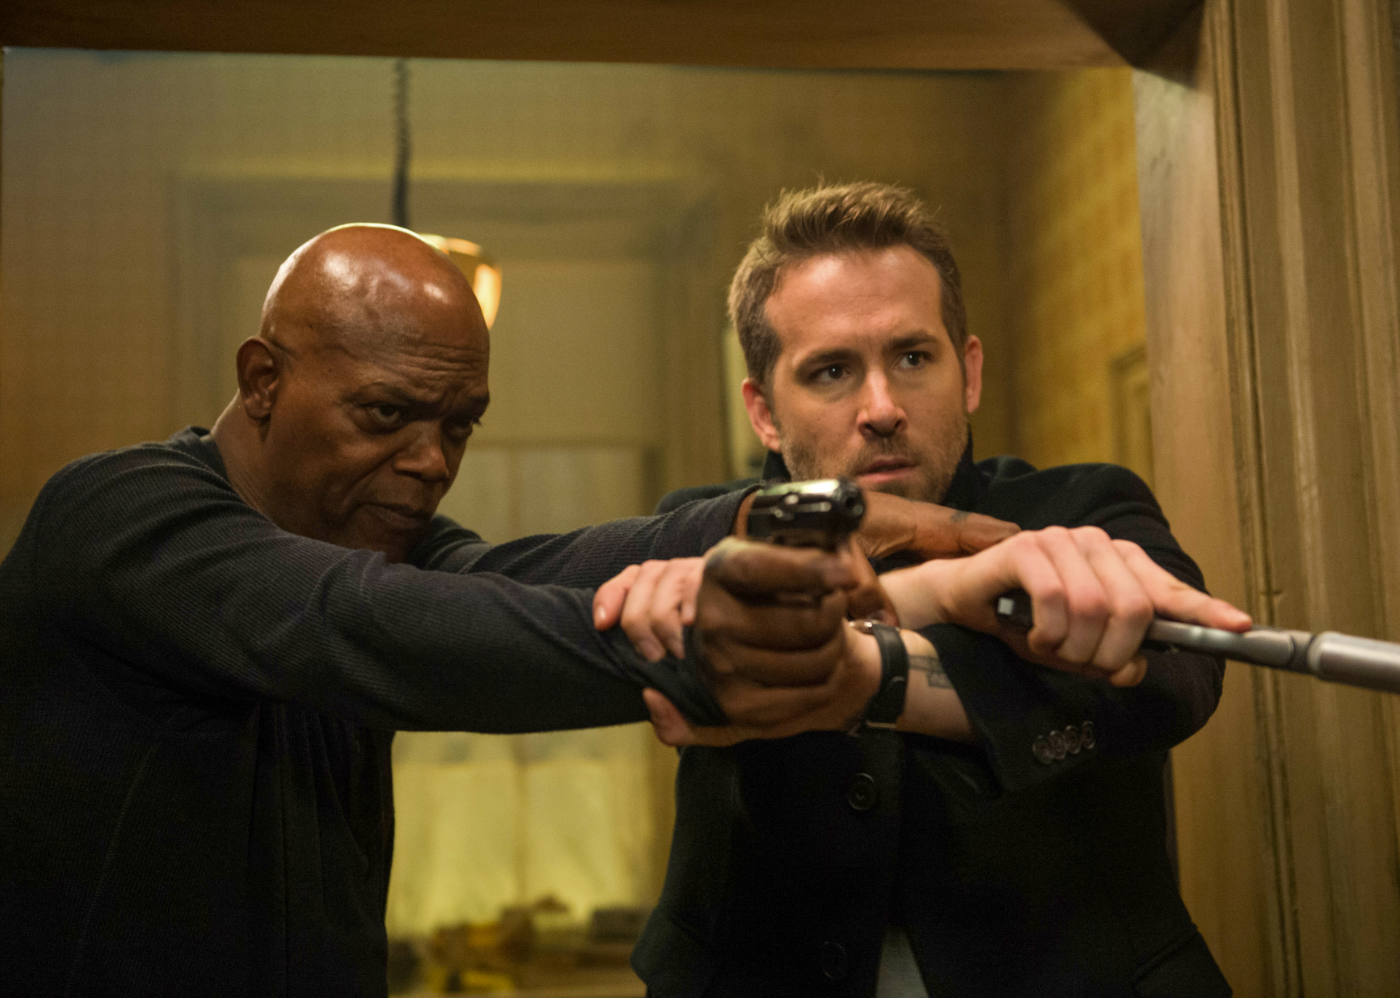 Review: The Hitman's Bodyguard is Lethal Weapon: European Vacation